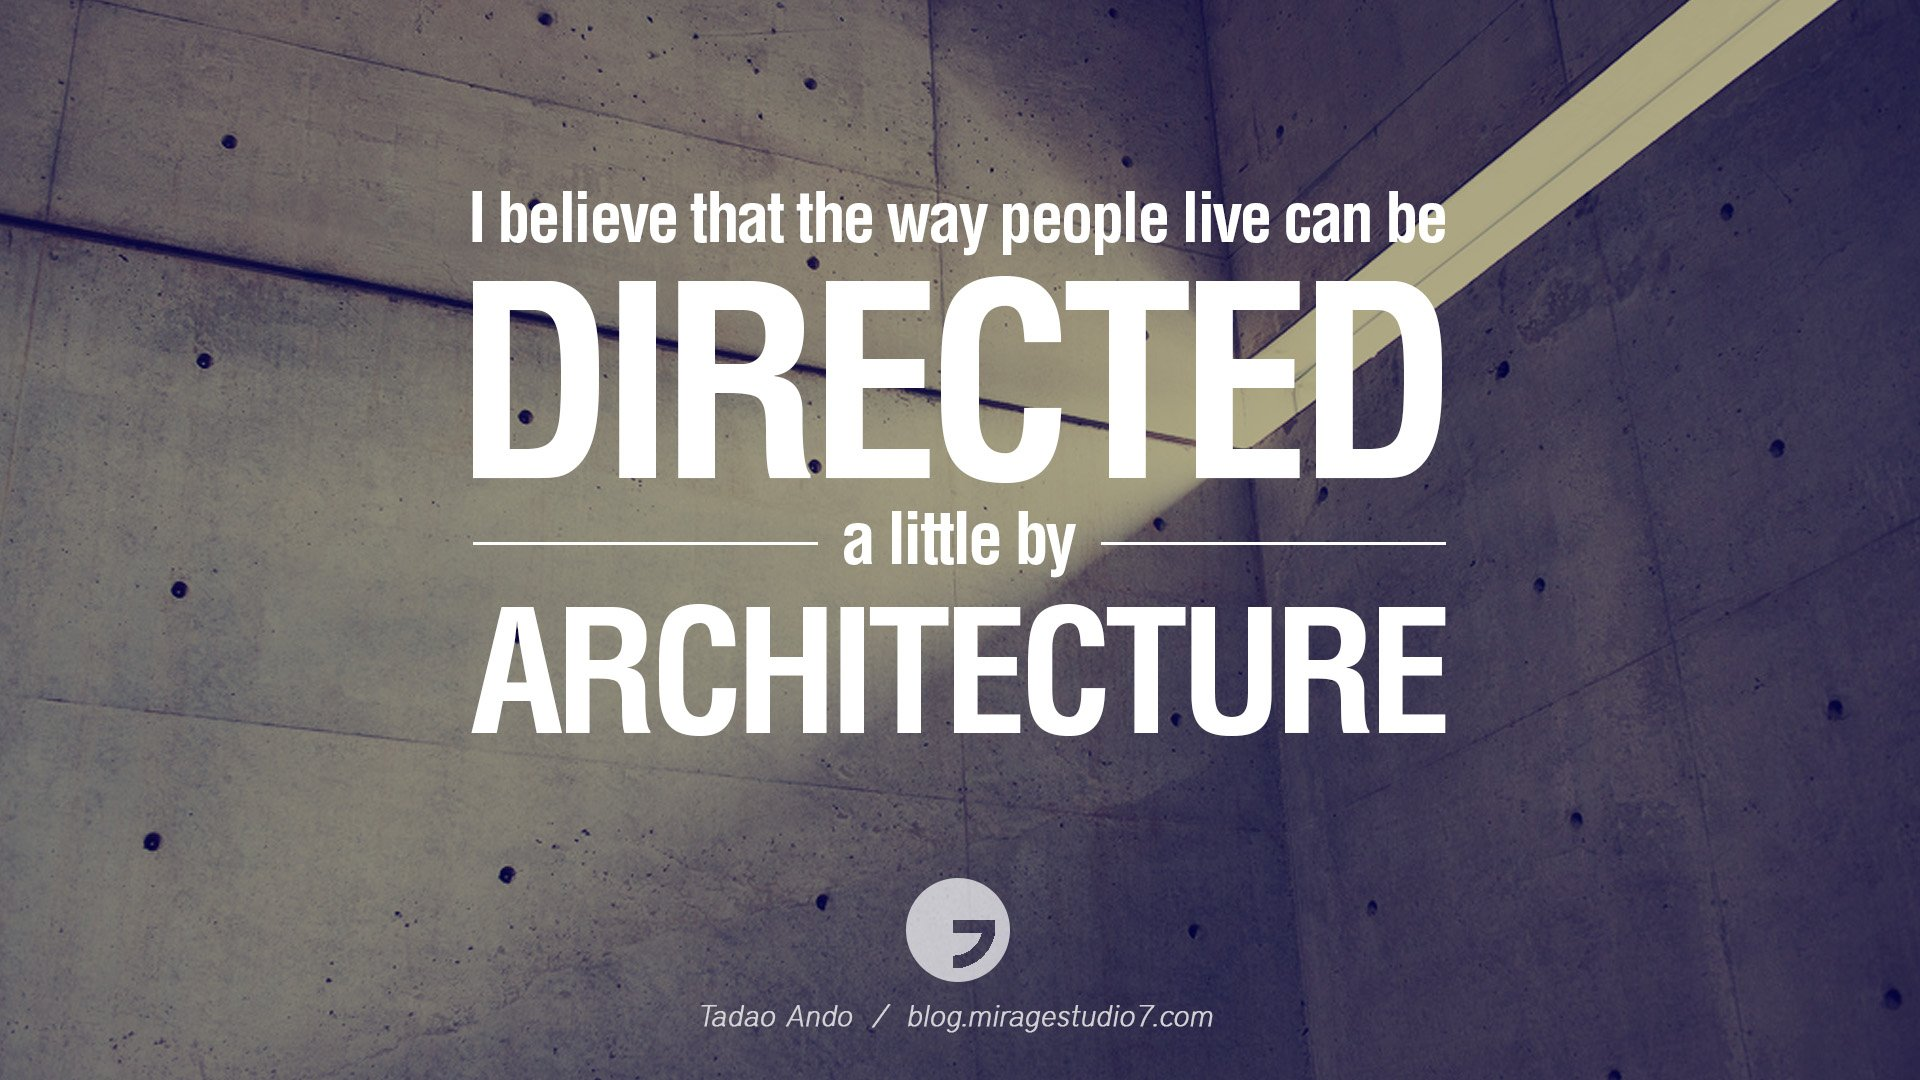 quotes architecture famous architects inspirational quote drawings interior architect tadao ando sayings believe modern quotesgram designers building directed inspiration way